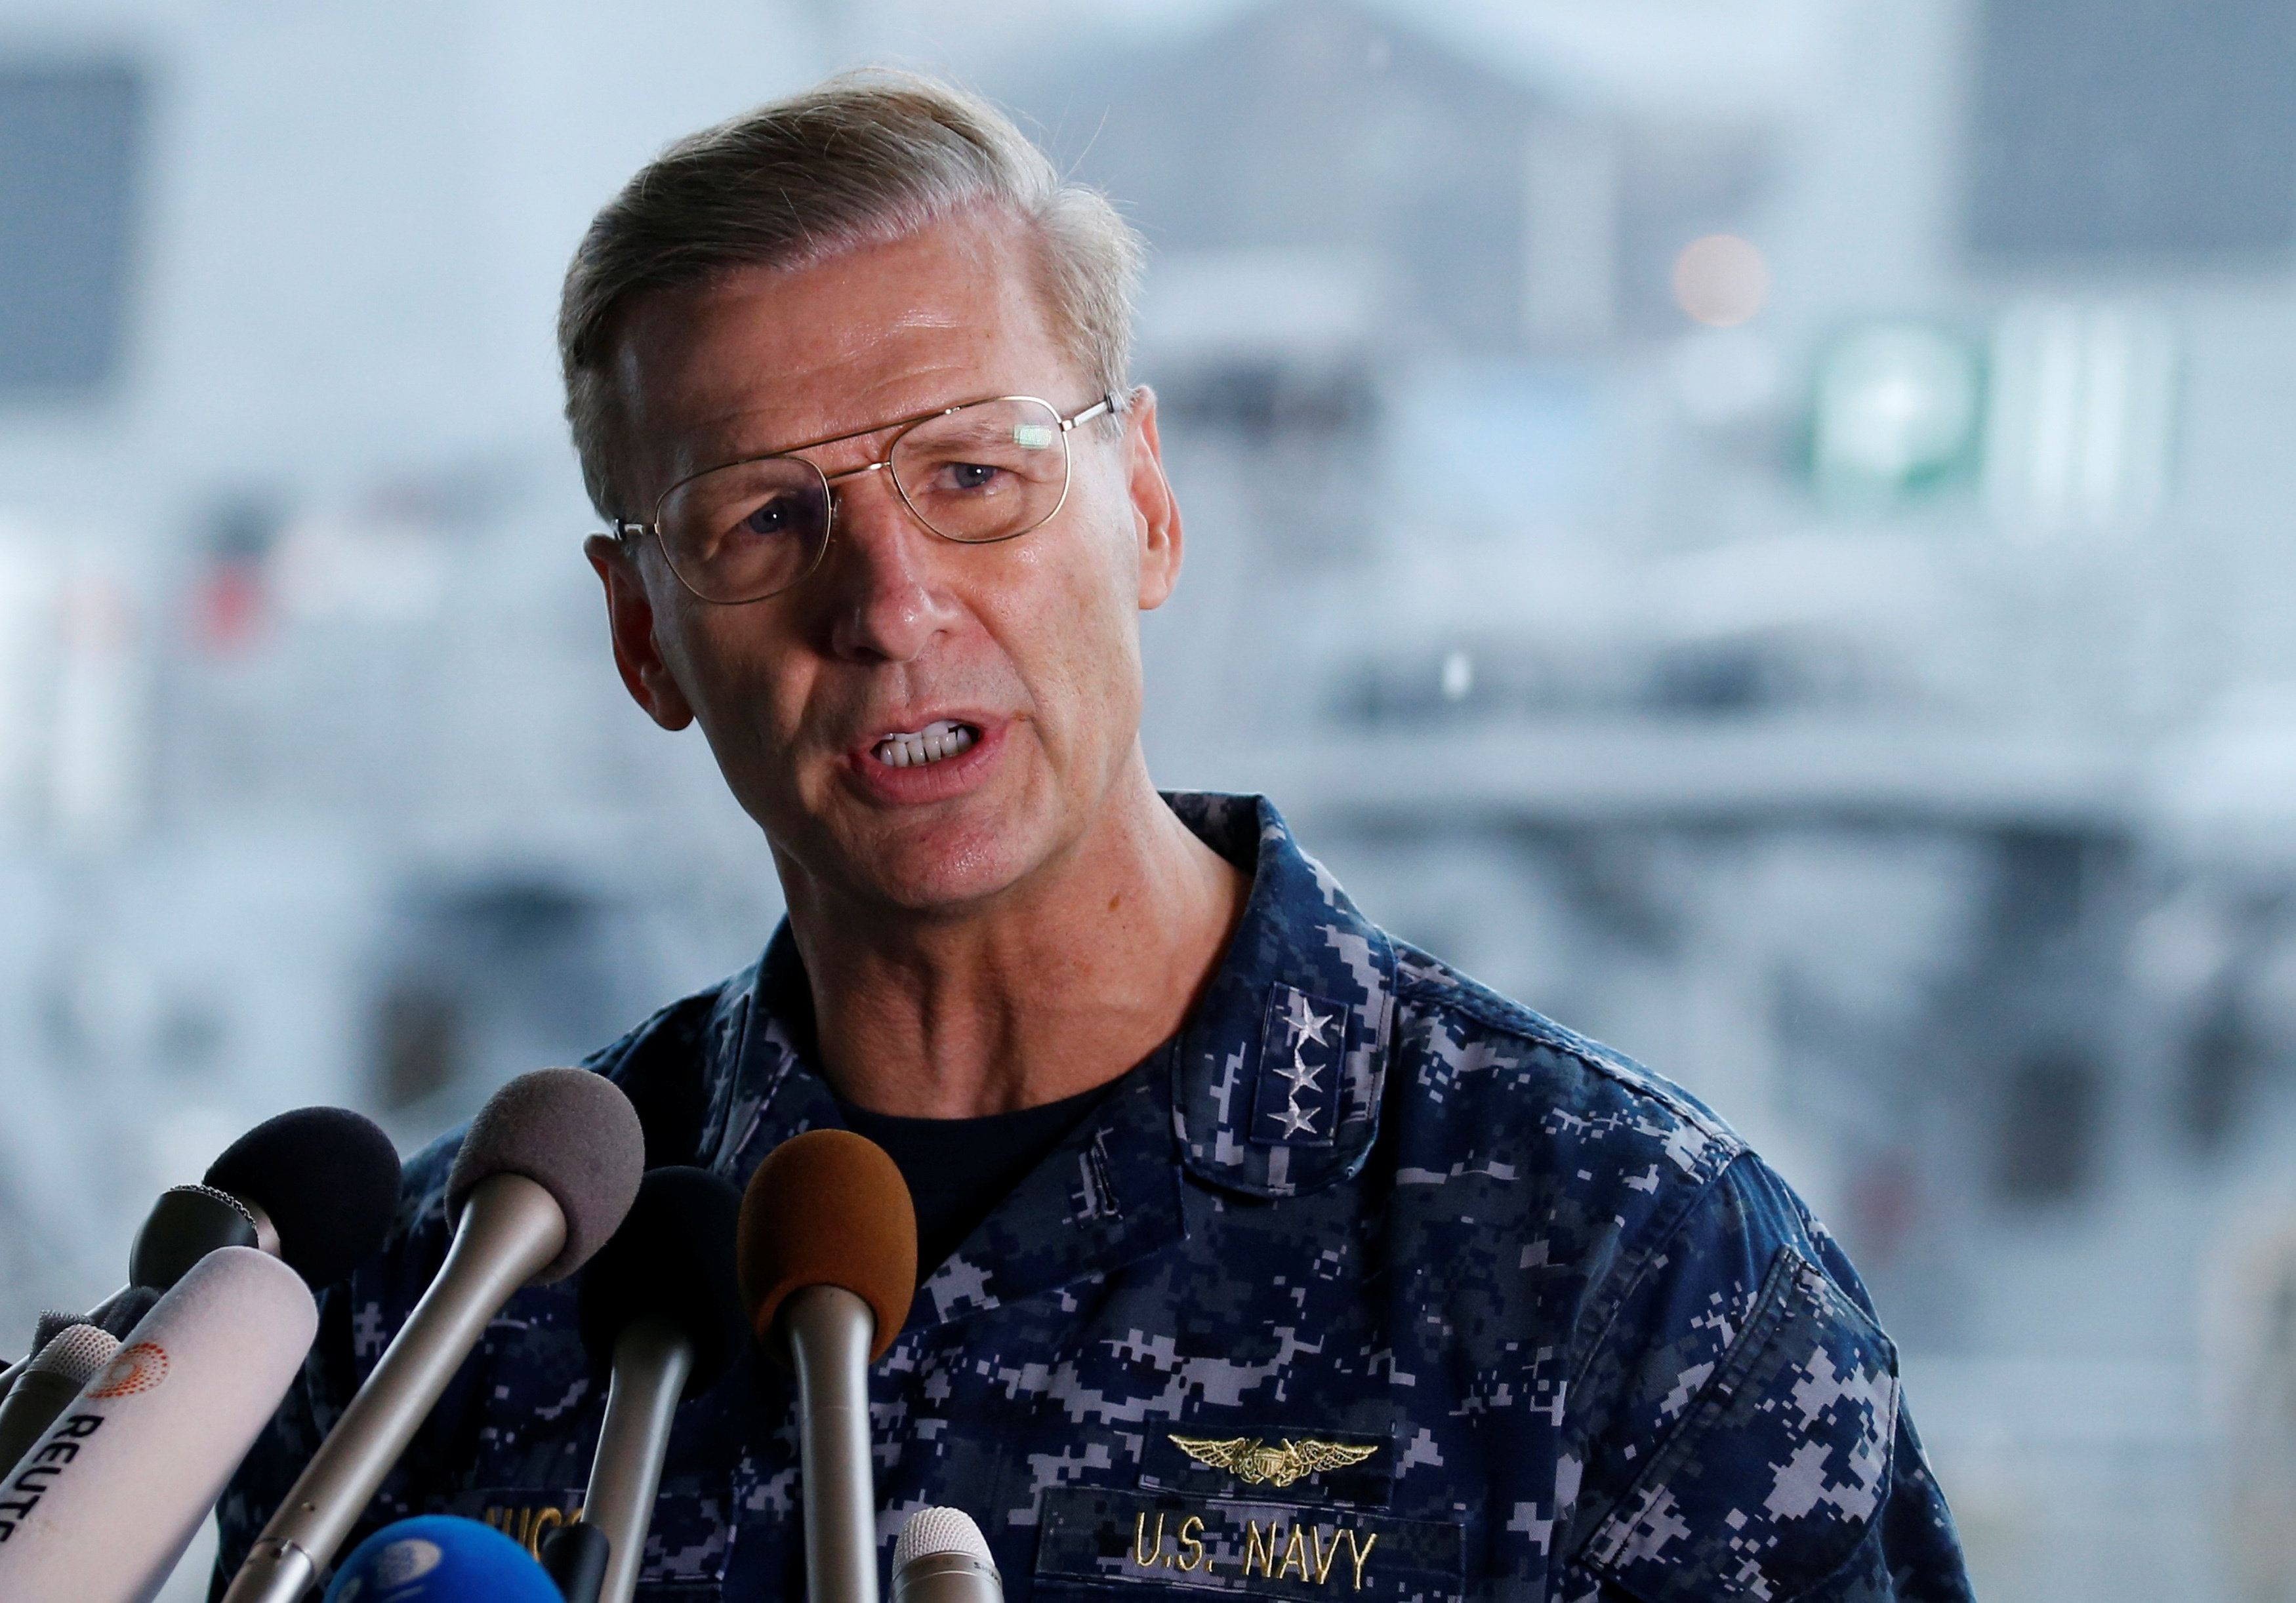 Vice Admiral Joseph Aucoin, U.S. 7th Fleet Commander, speaks to media on the status of the U.S. Navy destroyer USS Fitzgerald, damaged by colliding with a Philippine-flagged merchant vessel, and the seven missing Fitzgerald crew members, at the U.S. naval base in Yokosuka, south of Tokyo, Japan June 18, 2017. REUTERS/Toru Hanai